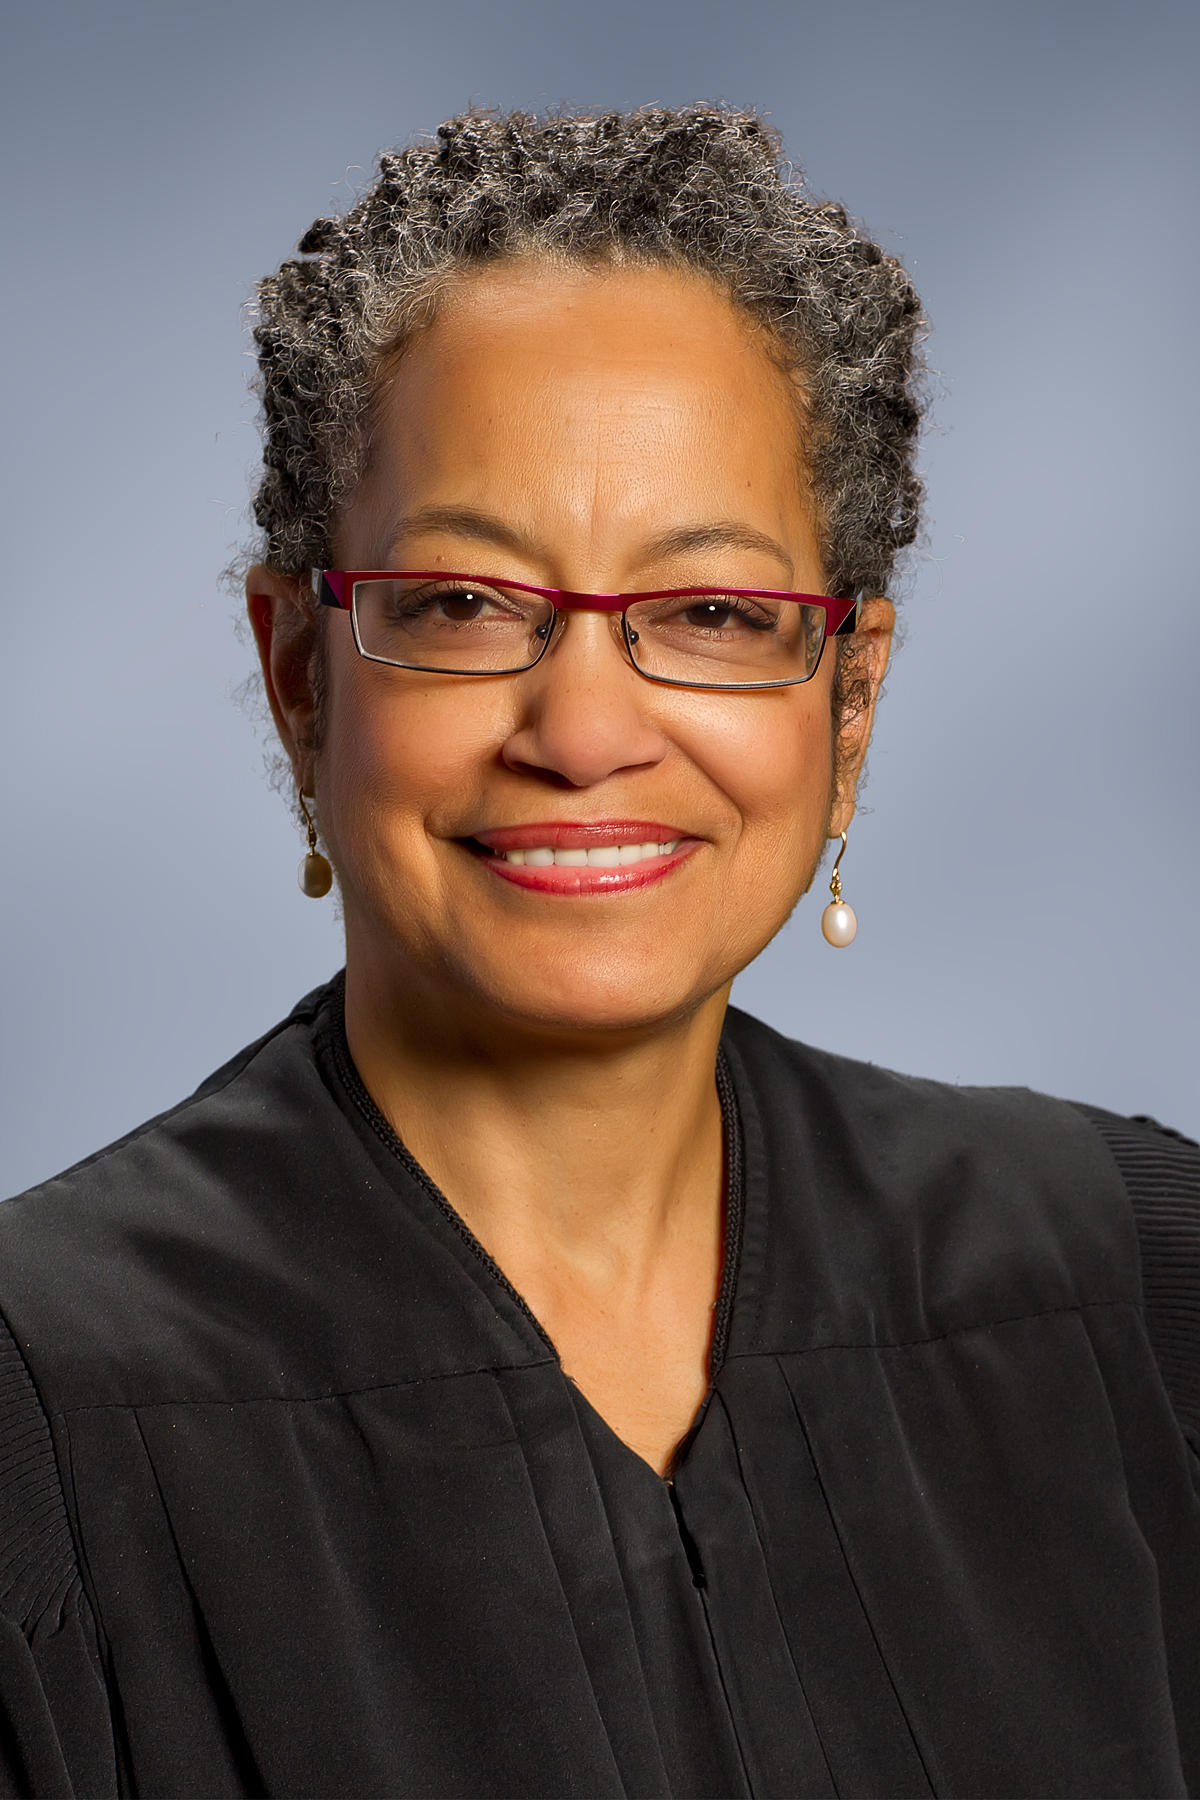 The Sad Story That Taught Judge Judith Hightower A Humbling Lesson